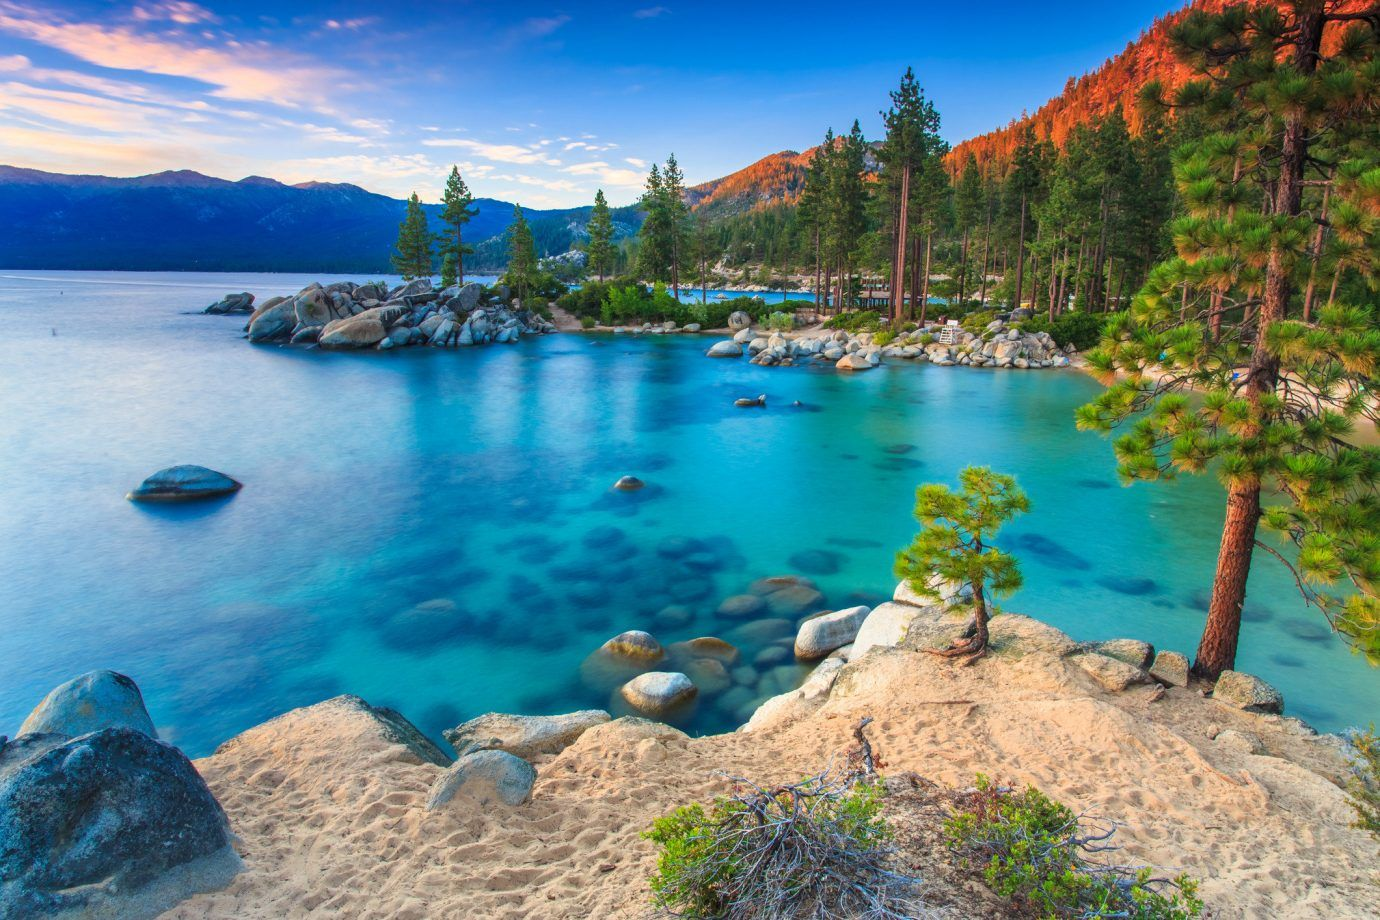 Beach Hotels Lakes Rivers Water Outdoor Sky Nature Mountain Rock Body Of River Lake Sea Surrounded Bay Canyon Lagoon S